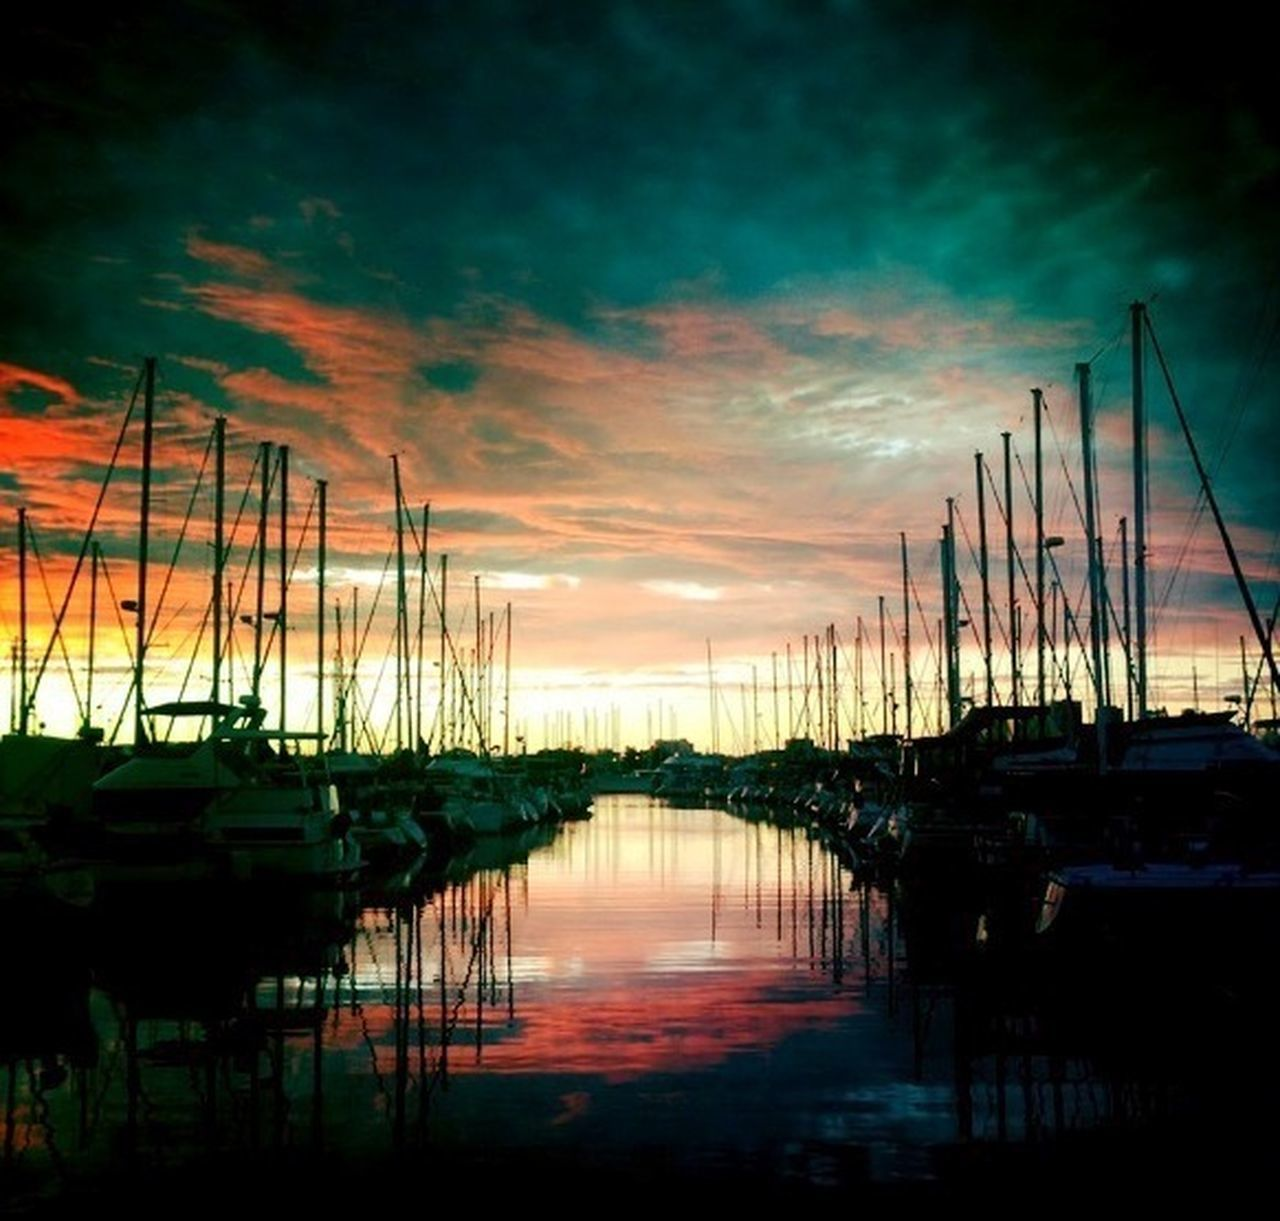 nautical vessel, sunset, reflection, moored, water, transportation, sky, cloud - sky, harbor, mast, no people, outdoors, tranquility, travel destinations, tranquil scene, nature, sea, sailboat, scenics, beauty in nature, sailing ship, day